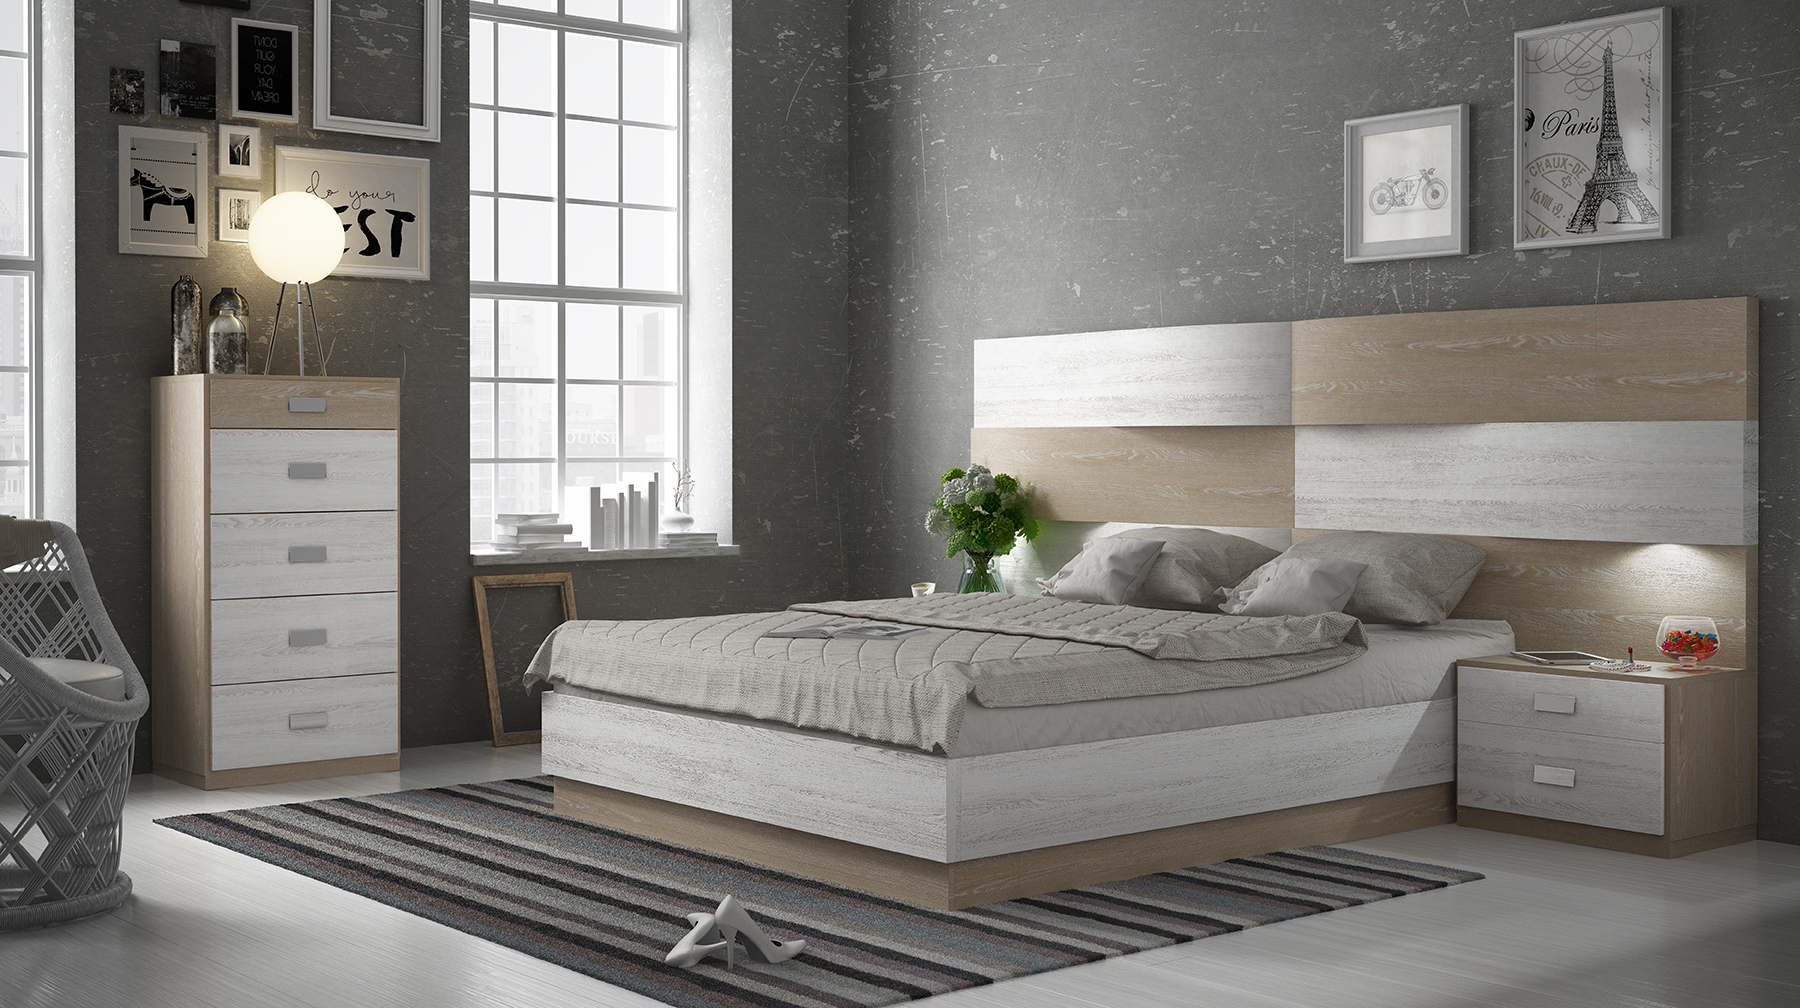 Matrimonio Bed Info : Graceful wood platform and headboard bed with extra